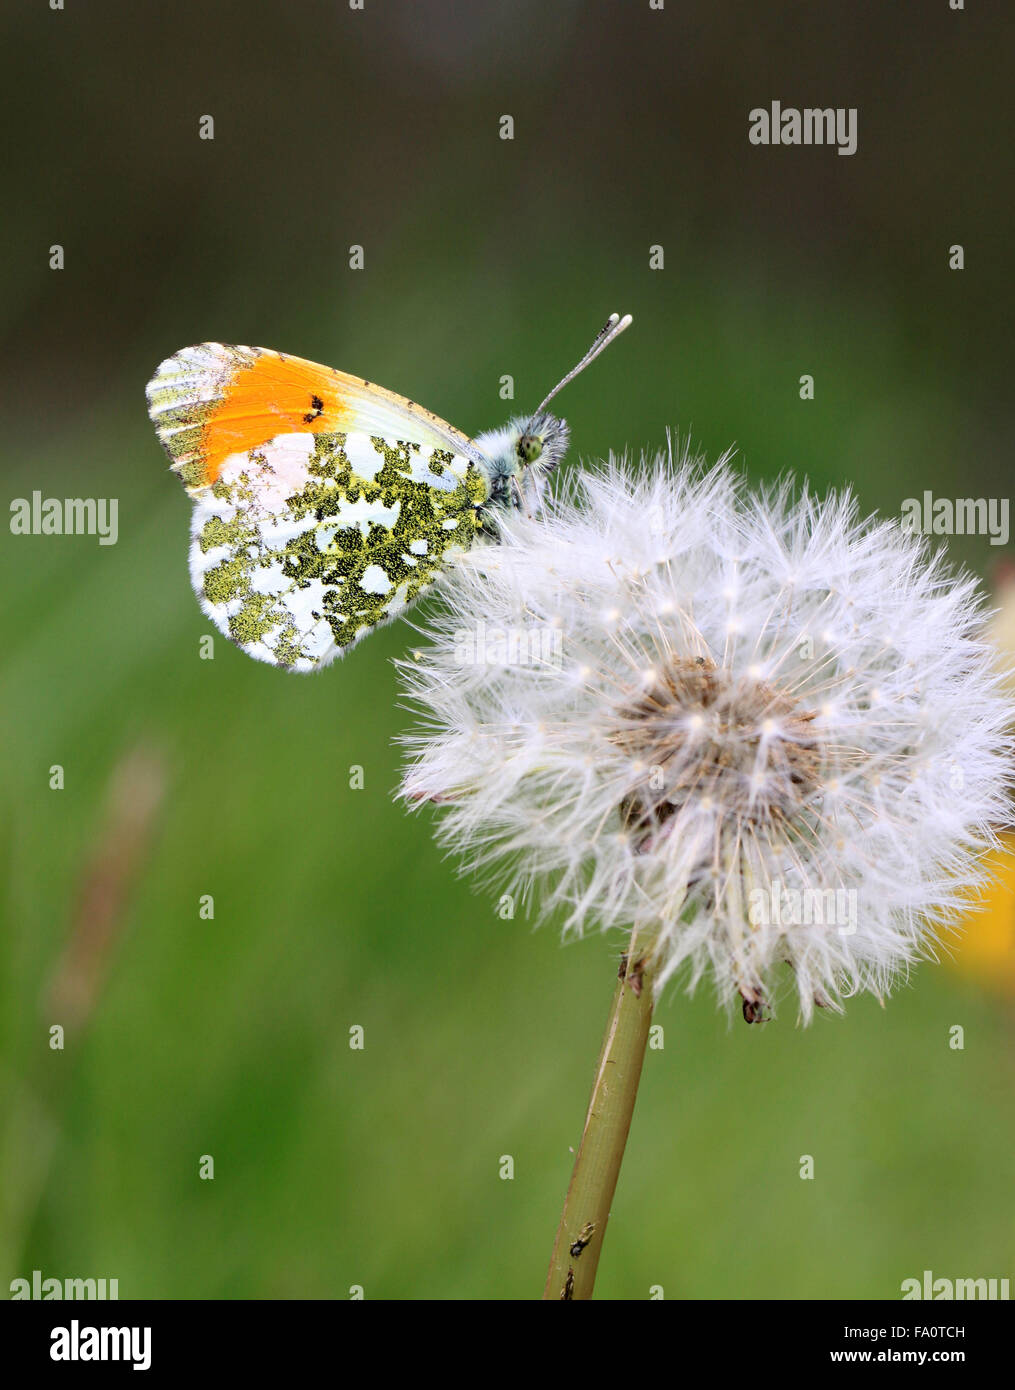 Orange tip butterfly Anthocharis cardamines  in the English countryside in the springtime on a Dandelion seed head Stock Photo